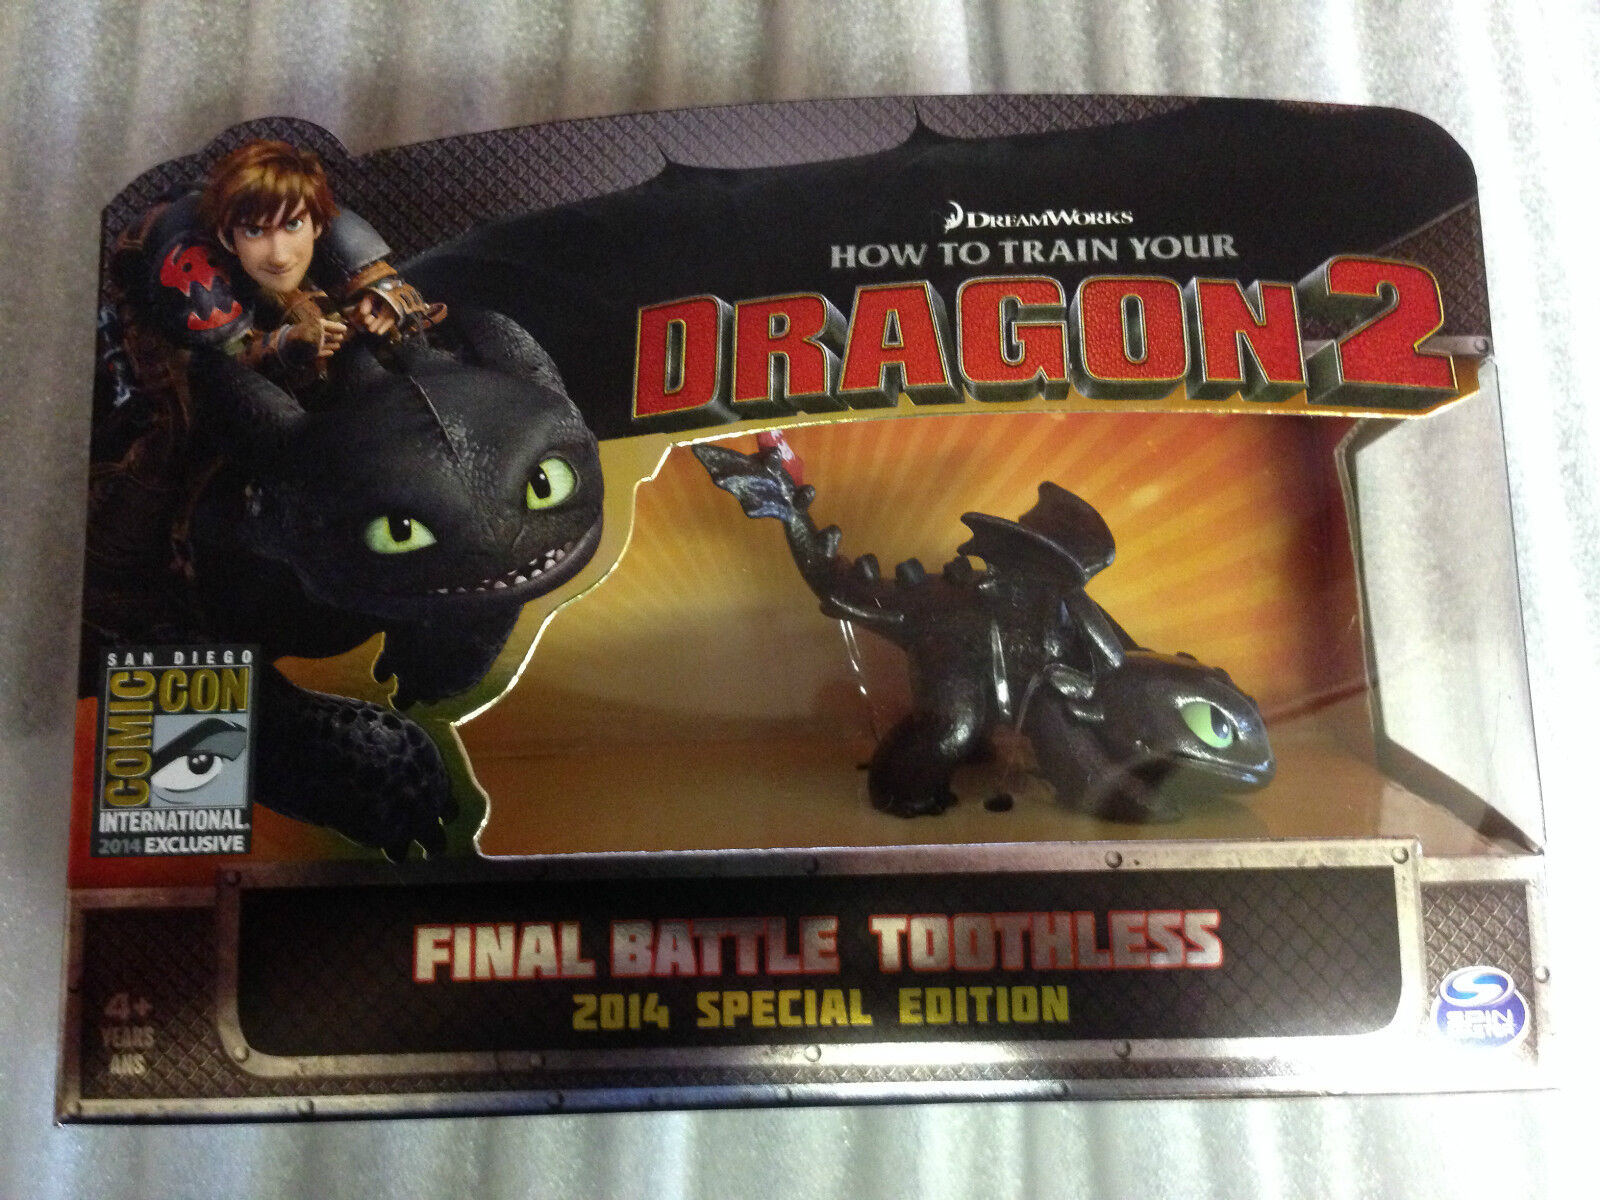 San Diego comic-con 2014 tren Your Dragon 2 How To Battle Toothless Exclusive RARE SOLD Final